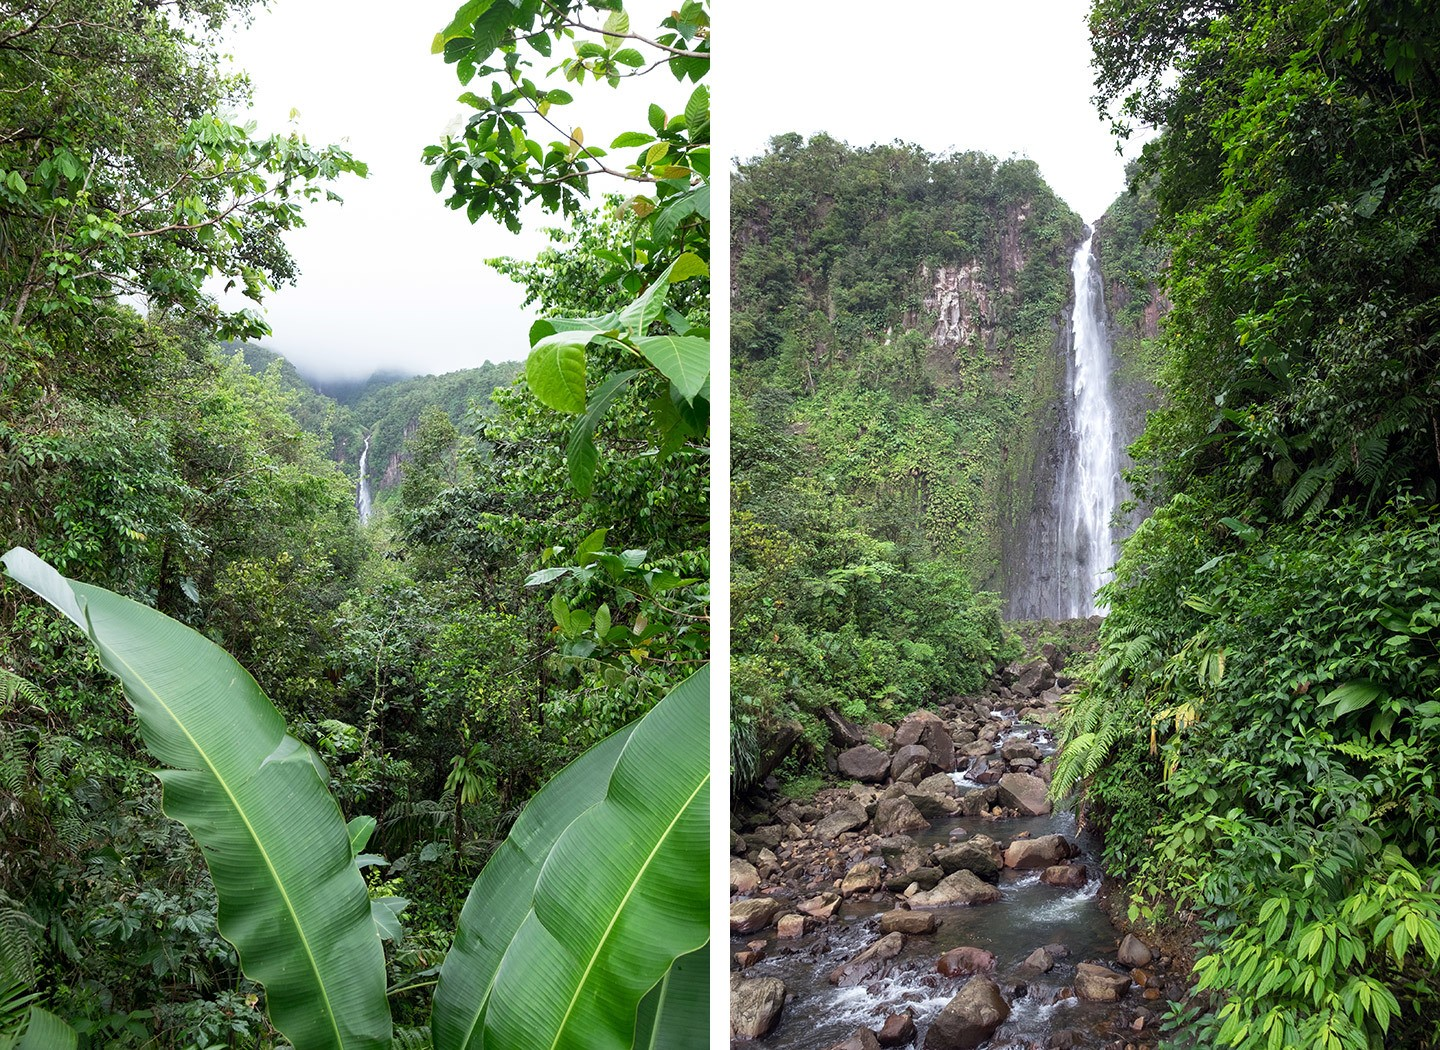 Chutes du Carbet waterfalls in Guadeloupe